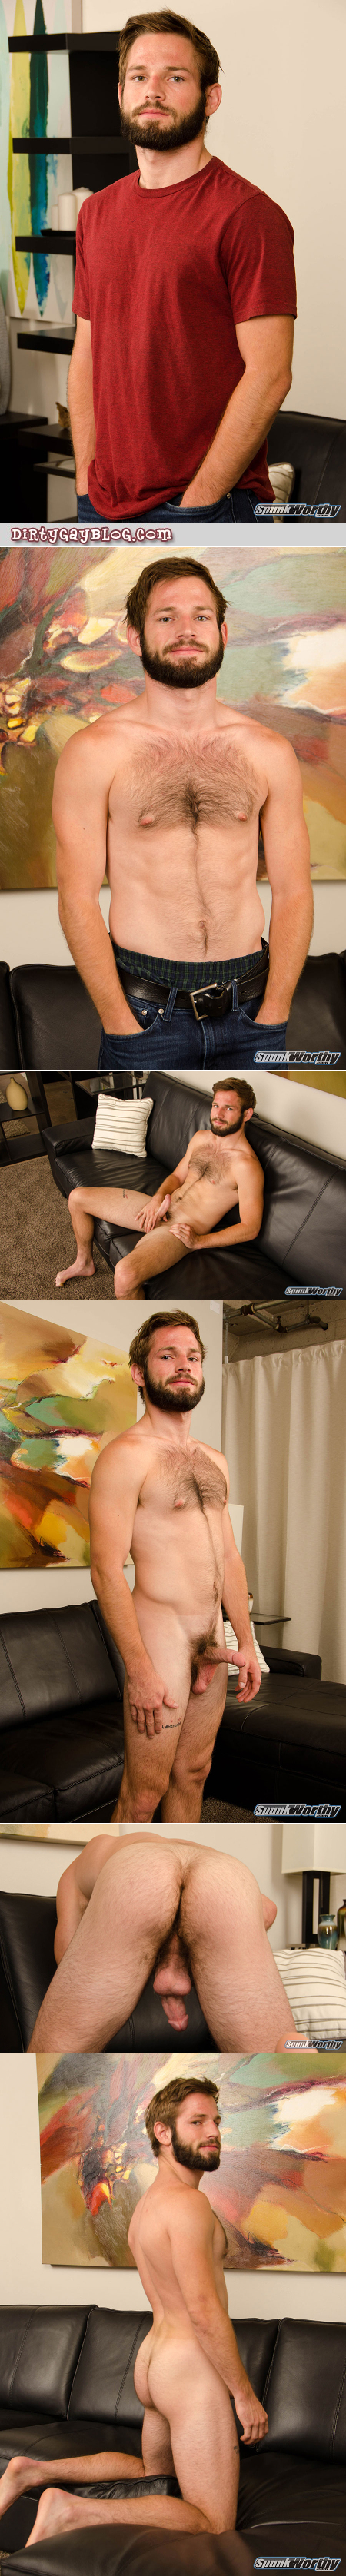 Hairy muscle cub strips naked and gets an erection.